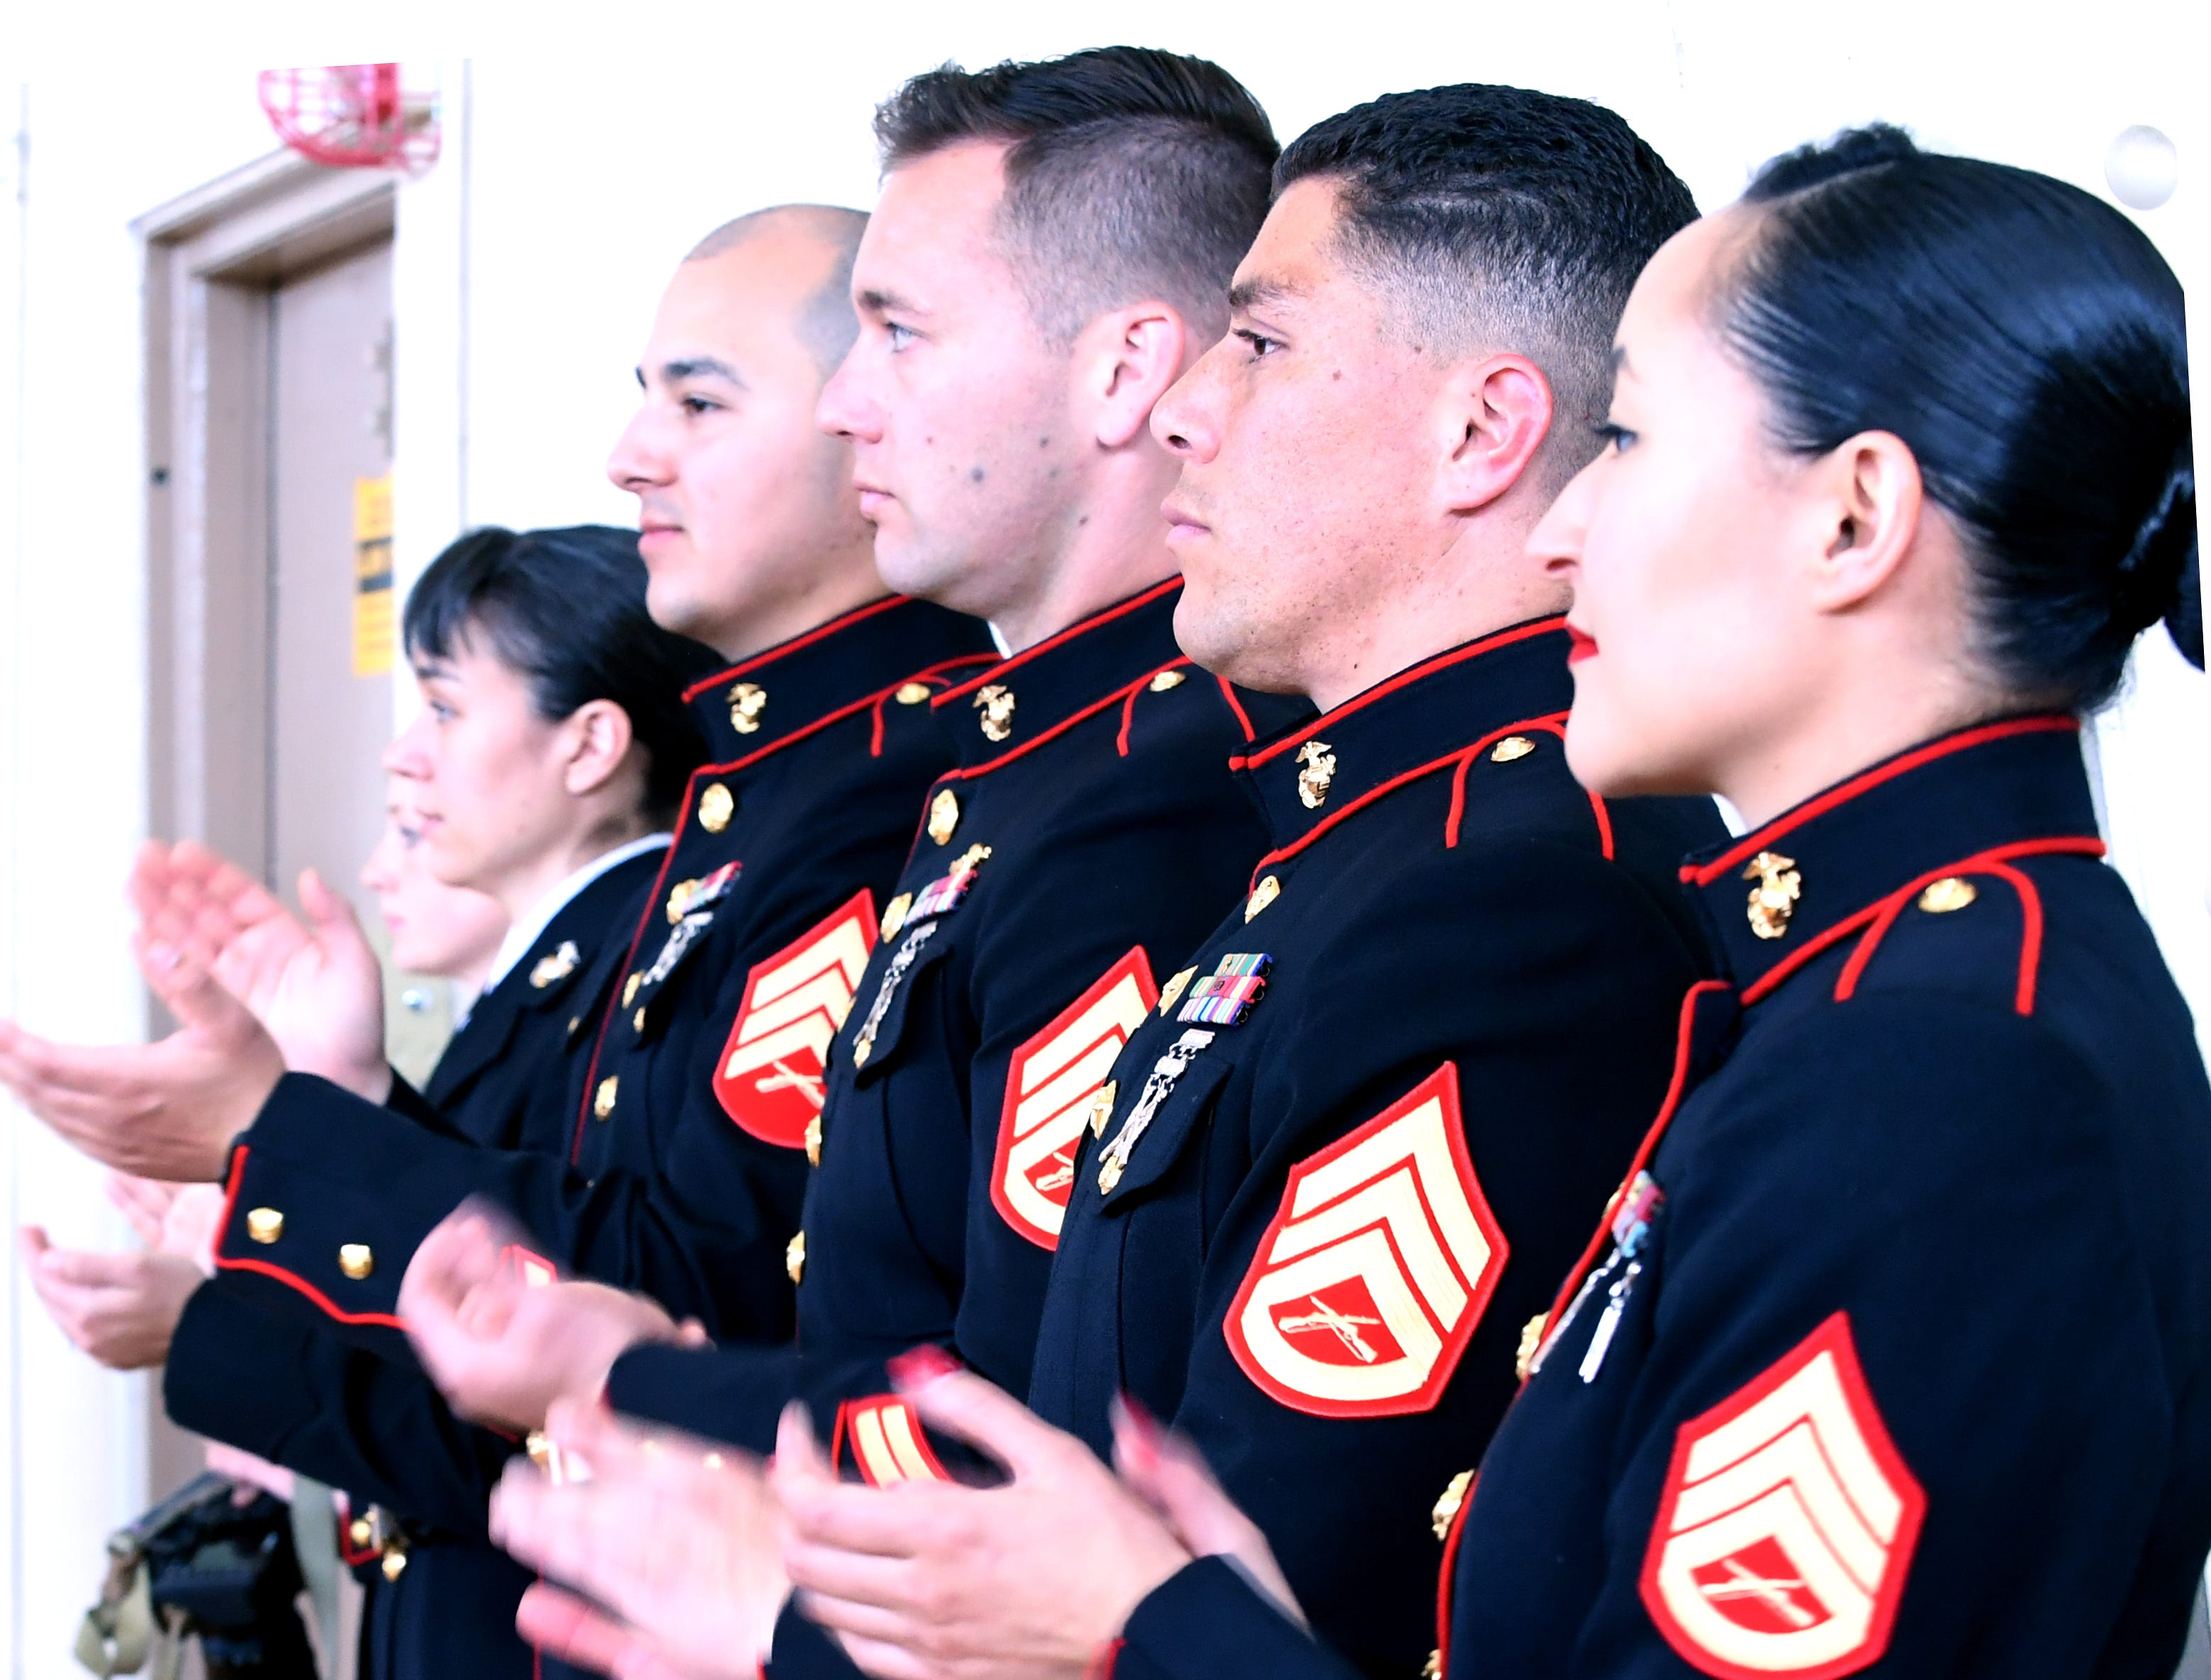 Marine Corps members clap for the newly-enlisted Saturday. April 20, 2019.